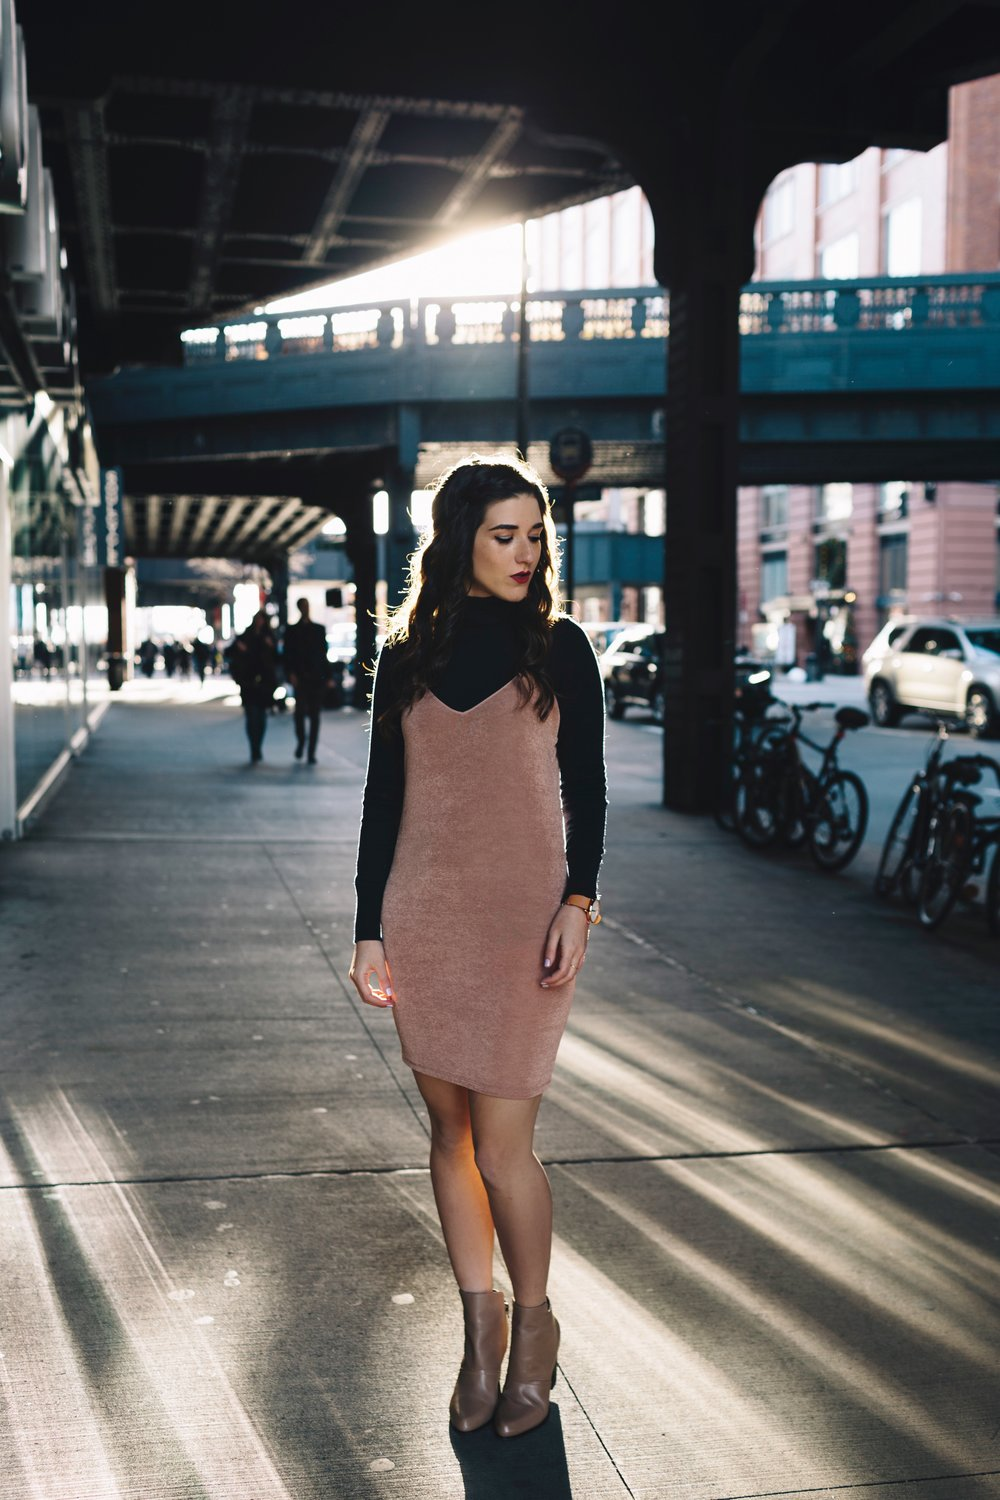 Navy Turtleneck + Pink Slip Dress Finding Your Niche Esther Santer Fashion Blog Louboutins & Love NYC Street Style Blogger Outfit OOTD Trendy Booties Shoes Hair Girl Women Winter Look Shopping Zara  Shirt M4D3 Banana Republic Photoshoot  New York City.JPG